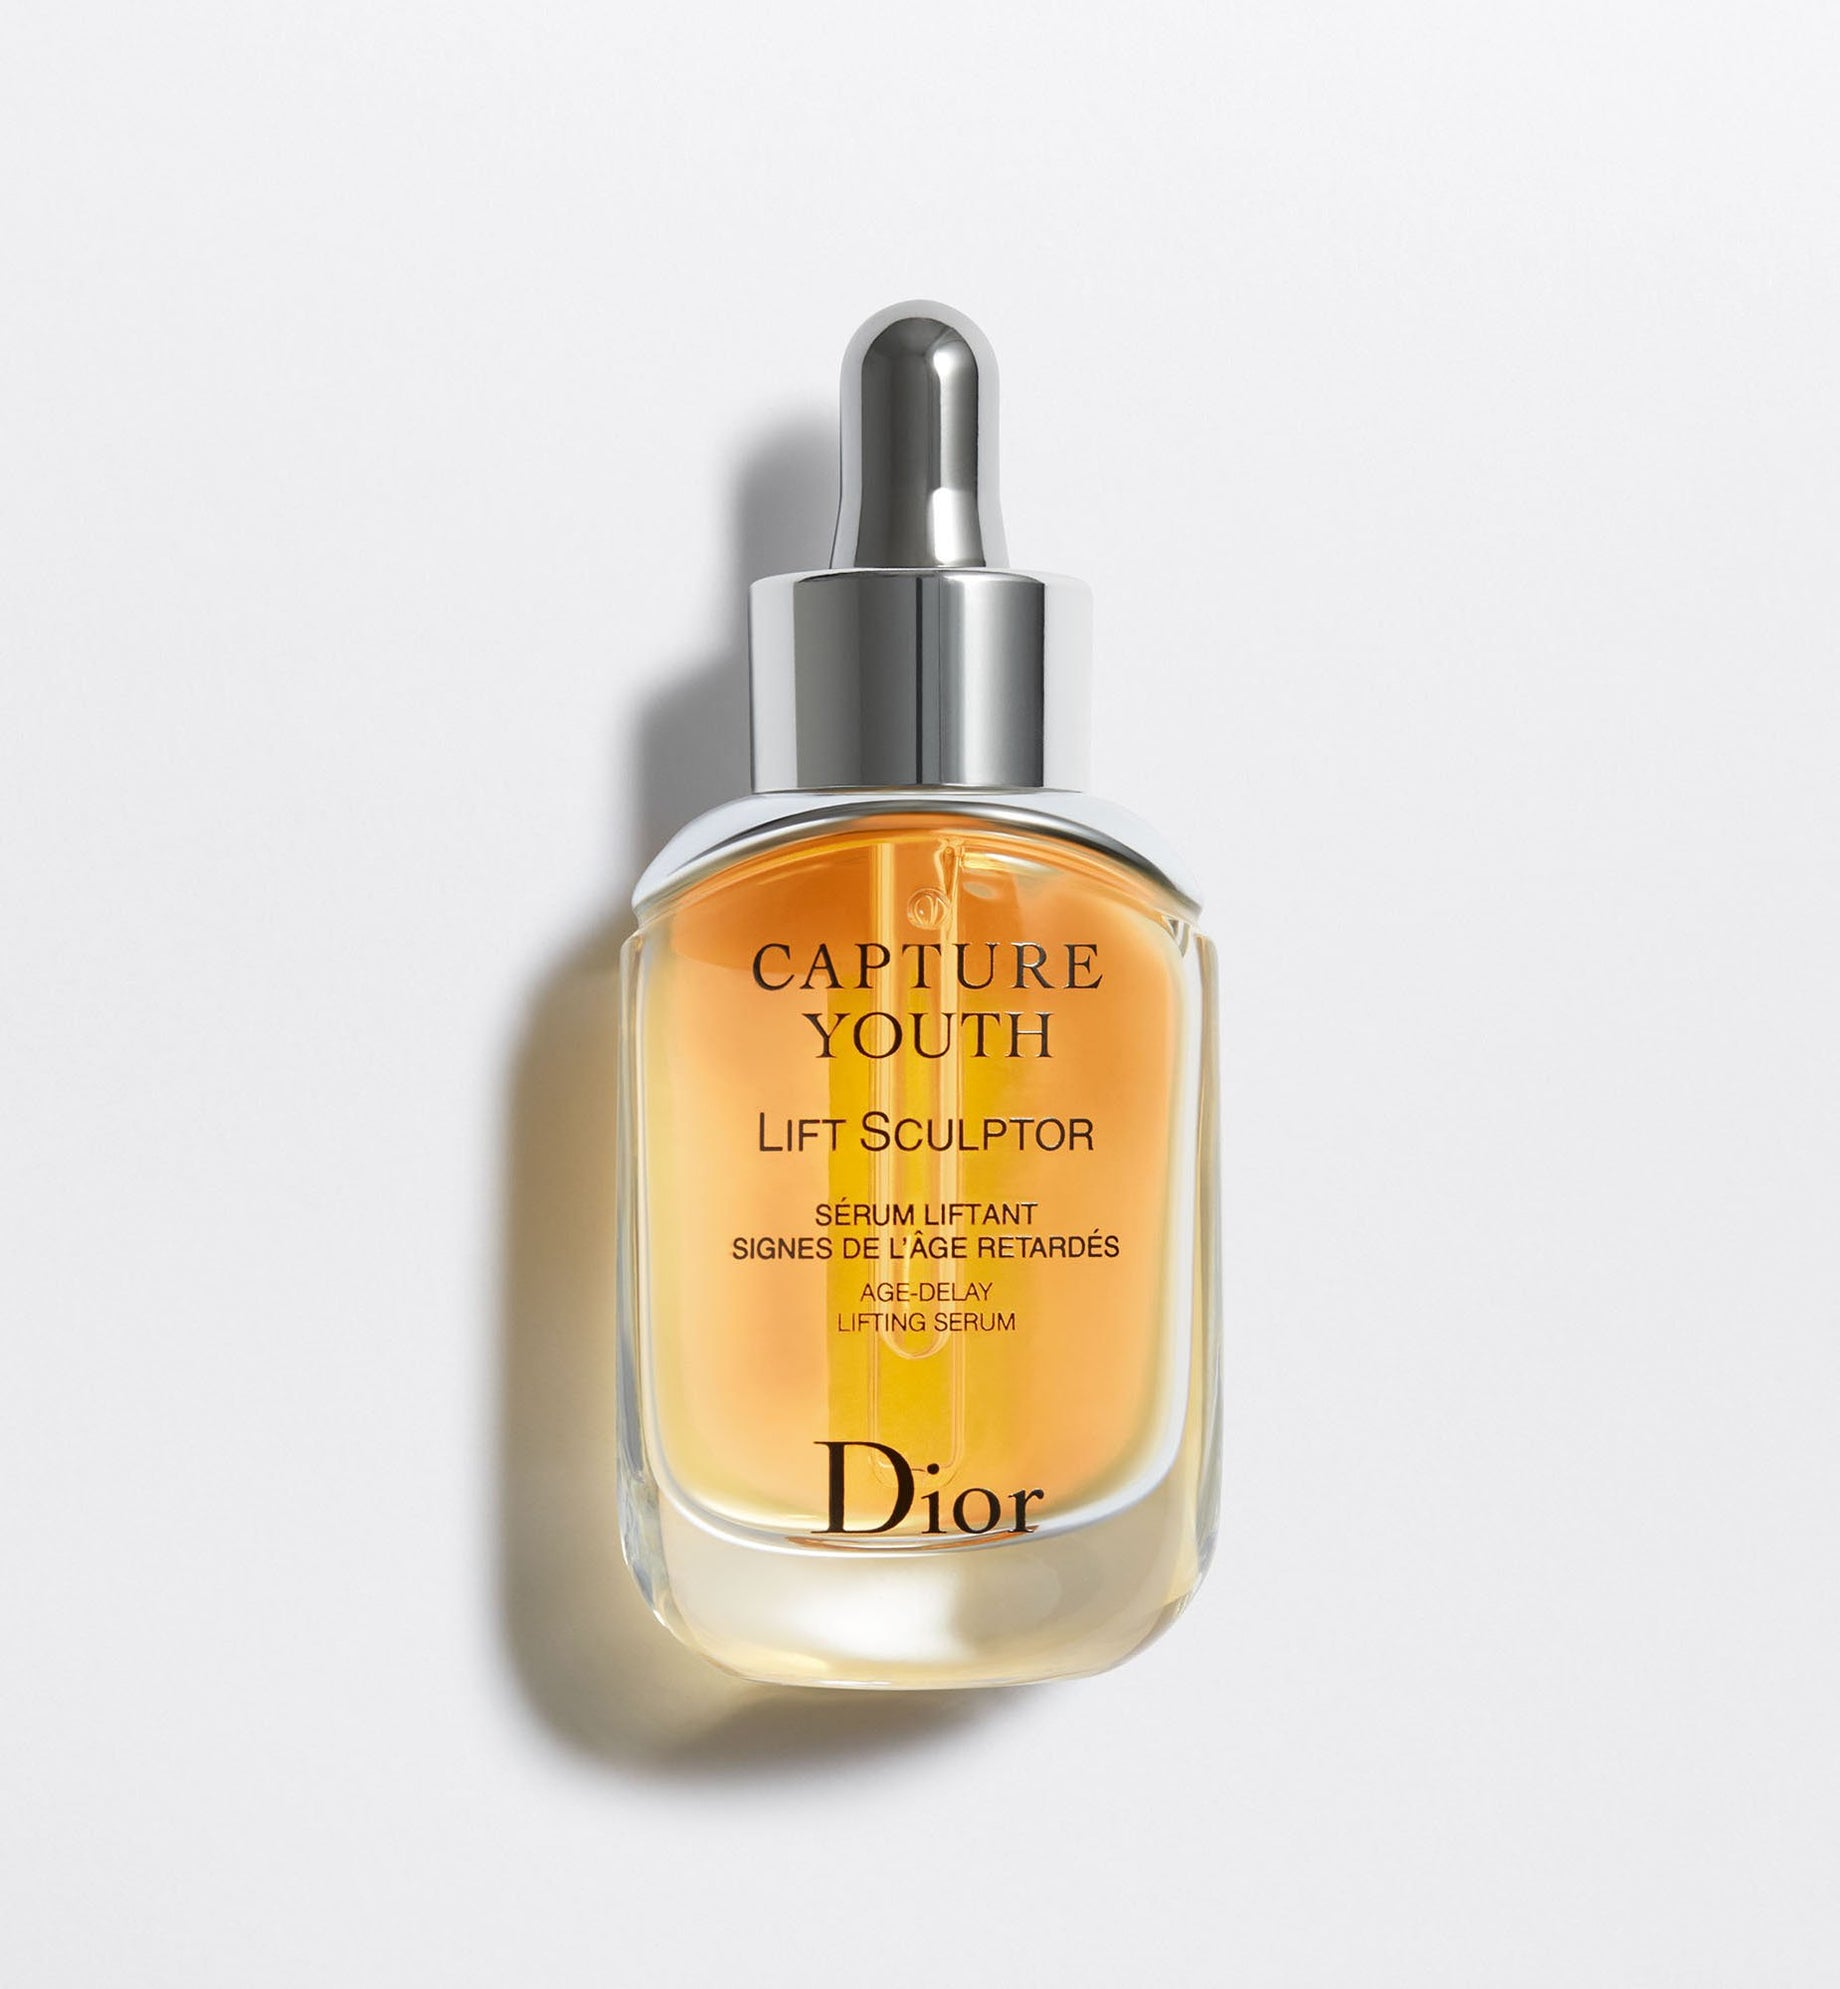 CAPTURE YOUTH LIFT SCULPTOR AGE-DELAY LIFTING SERUM